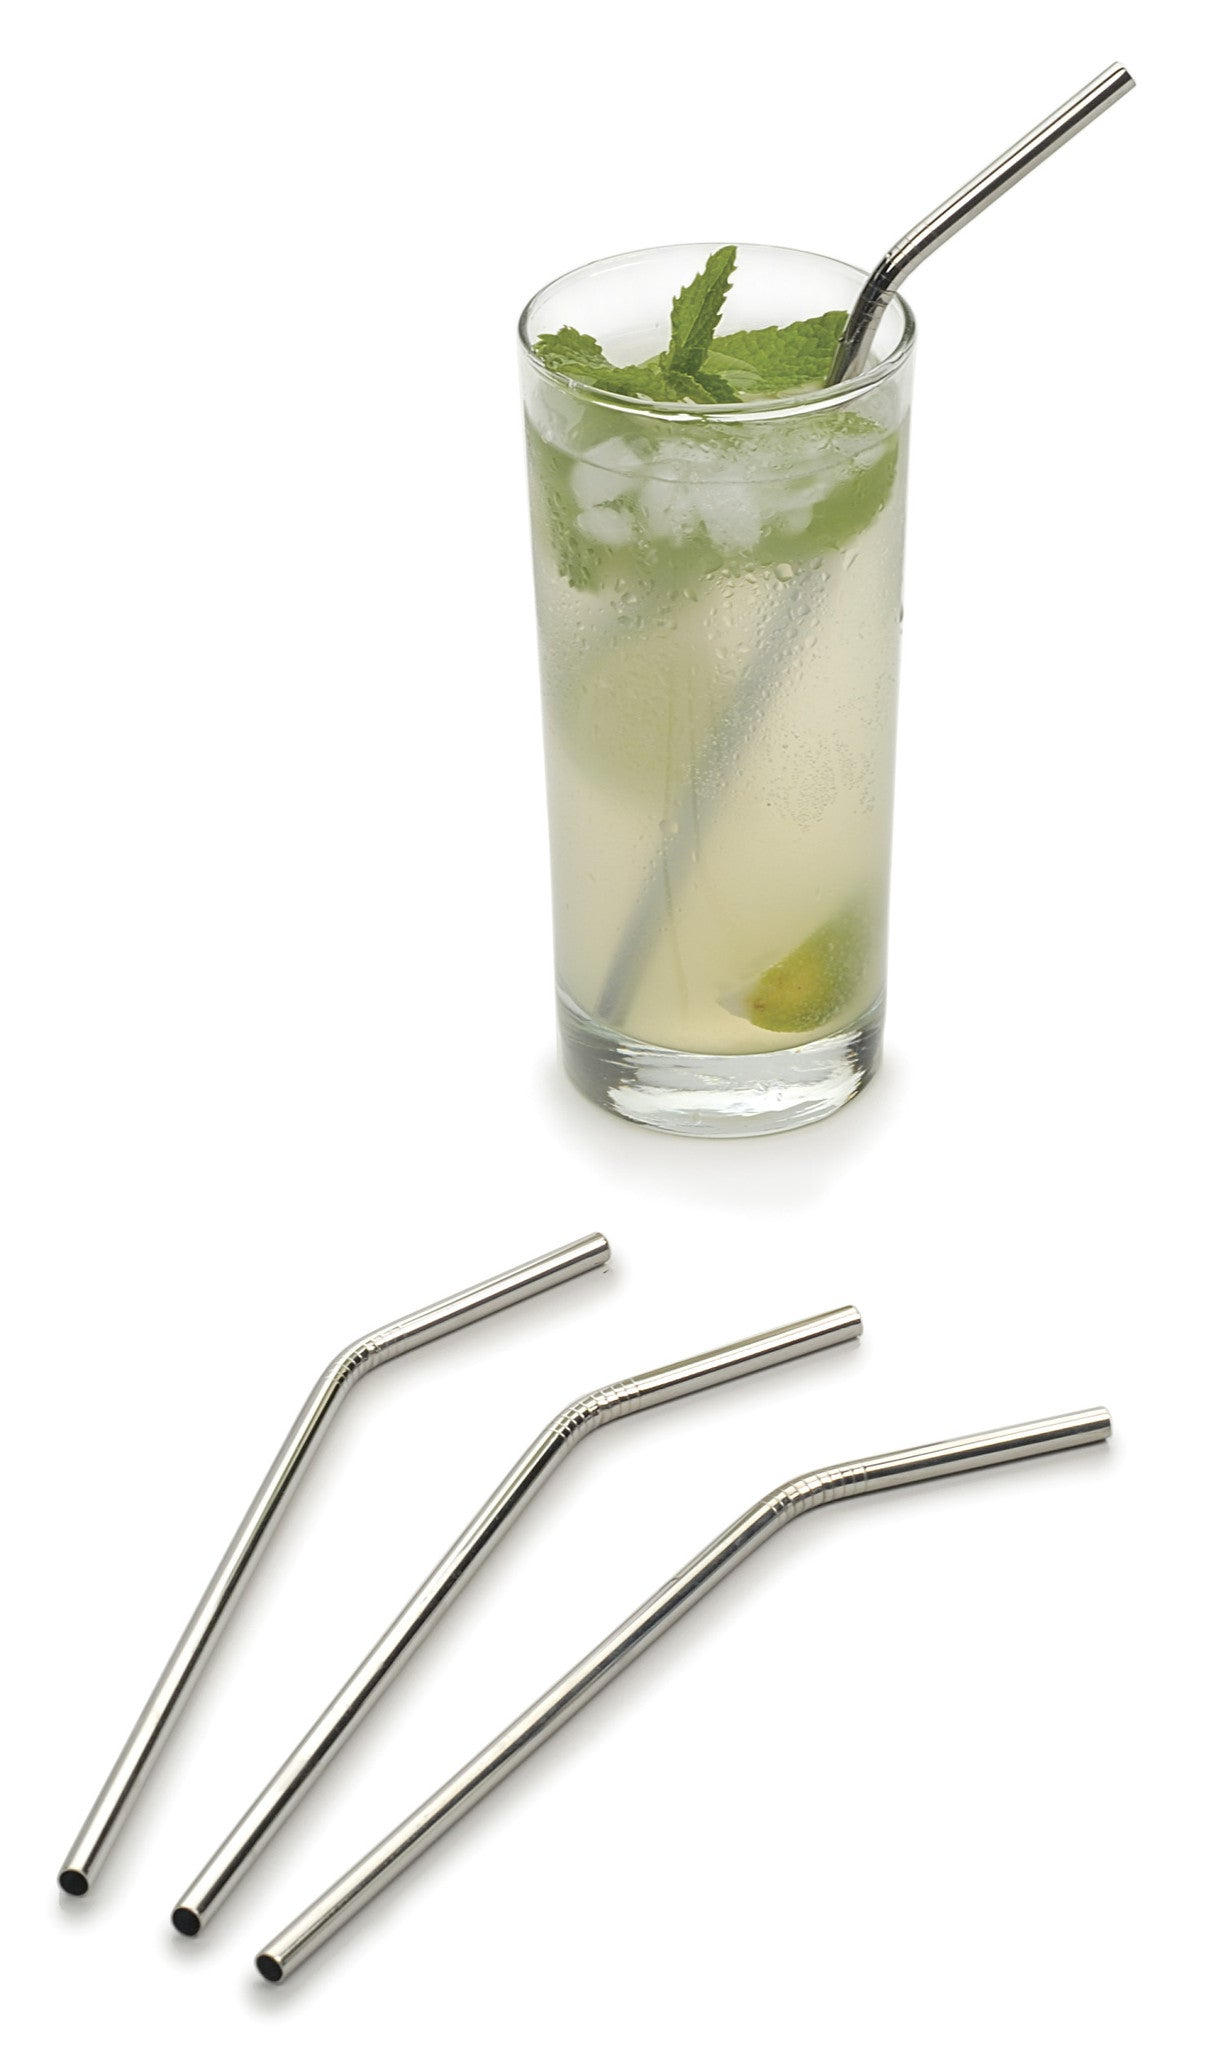 Angled Stainless Steel Straw